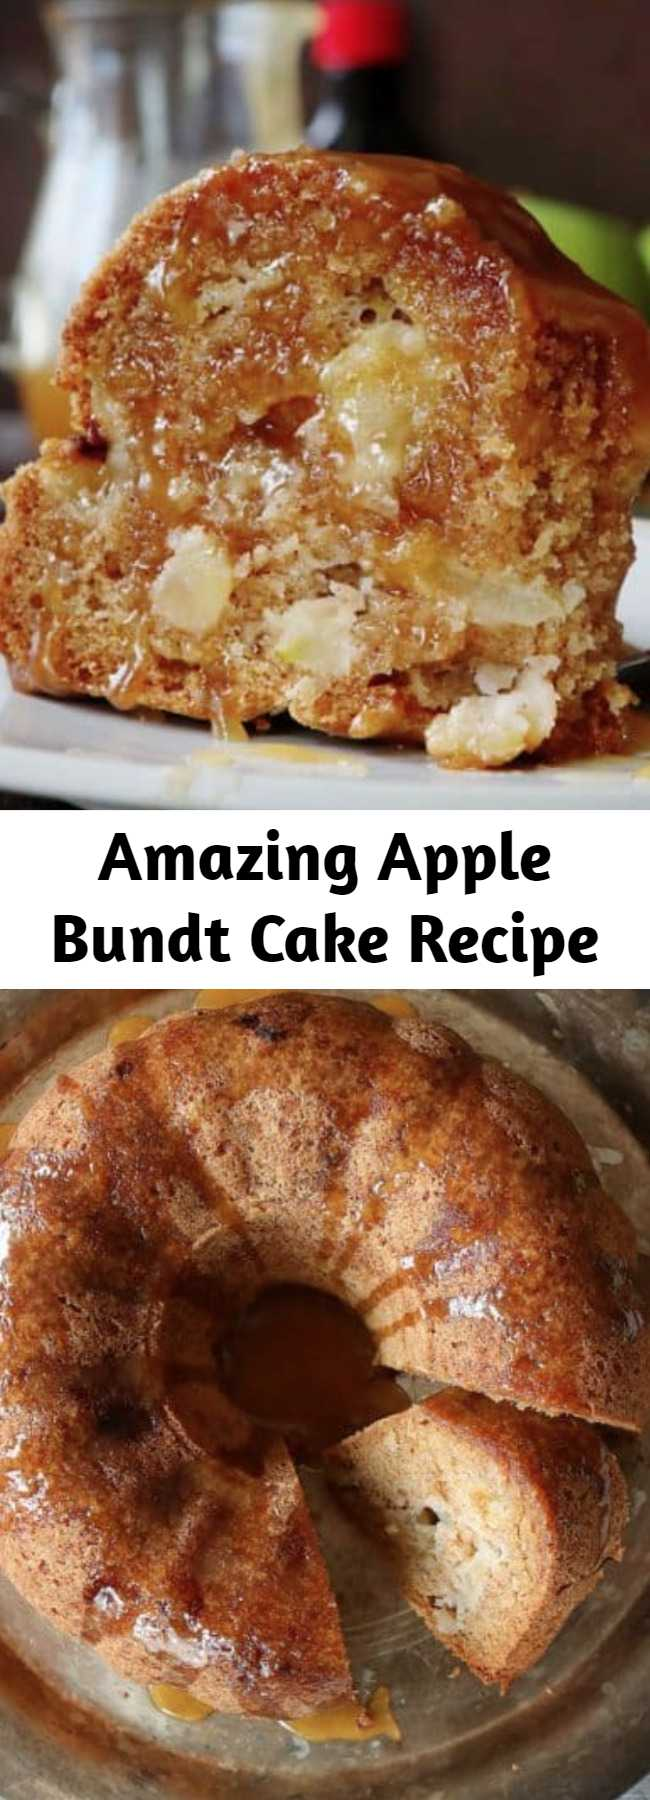 Amazing Apple Bundt Cake Recipe - Seriously amazing Apple Bundt Cake that you will want to make again and again! This recipe has been handed down through the generations and definitely stands the test of time. #applebundtcake #baking #fallbaking #recipes #applecake #apples